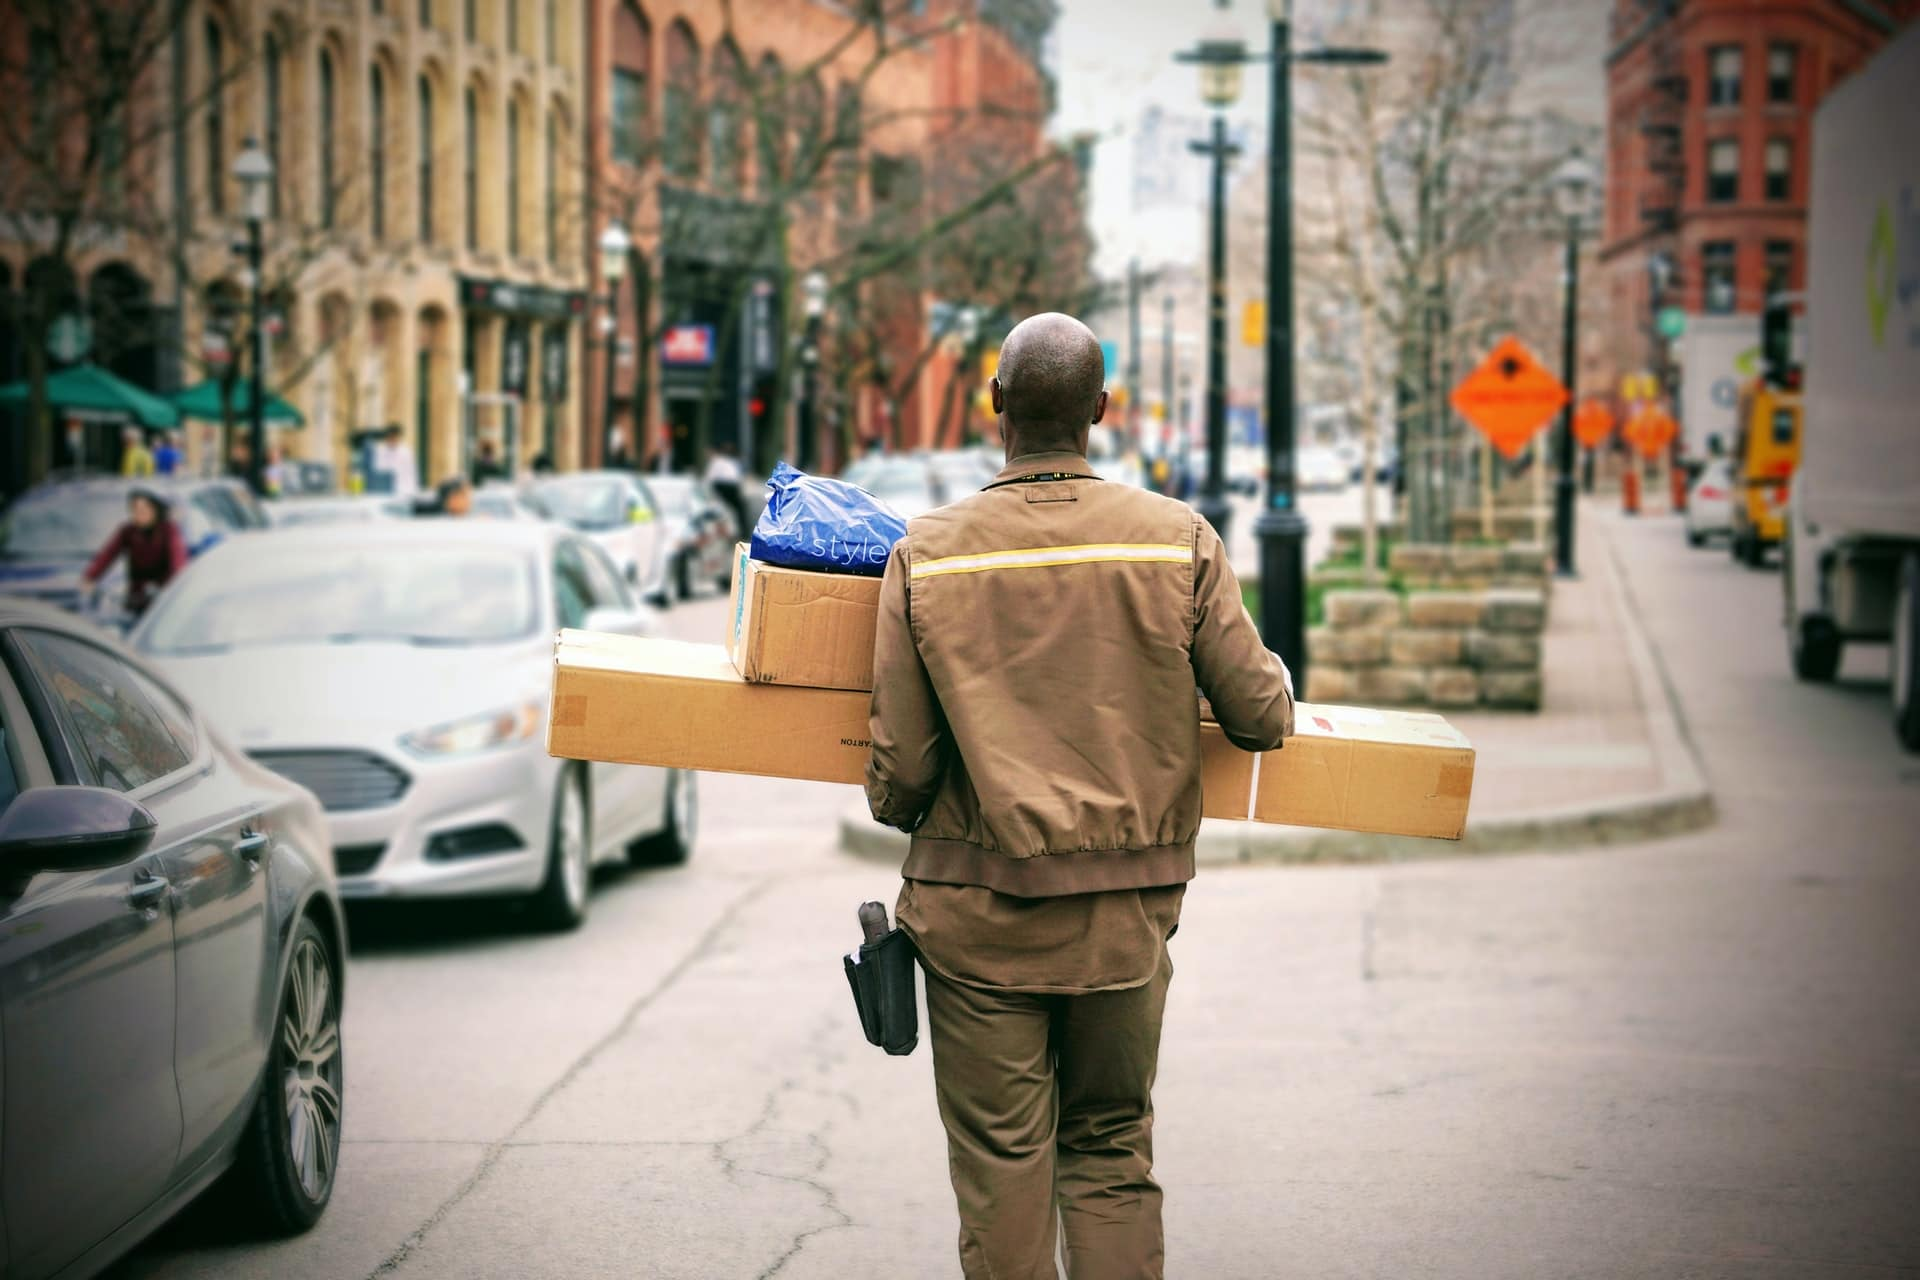 The courier carries the packages and then delivers them to the addressee.